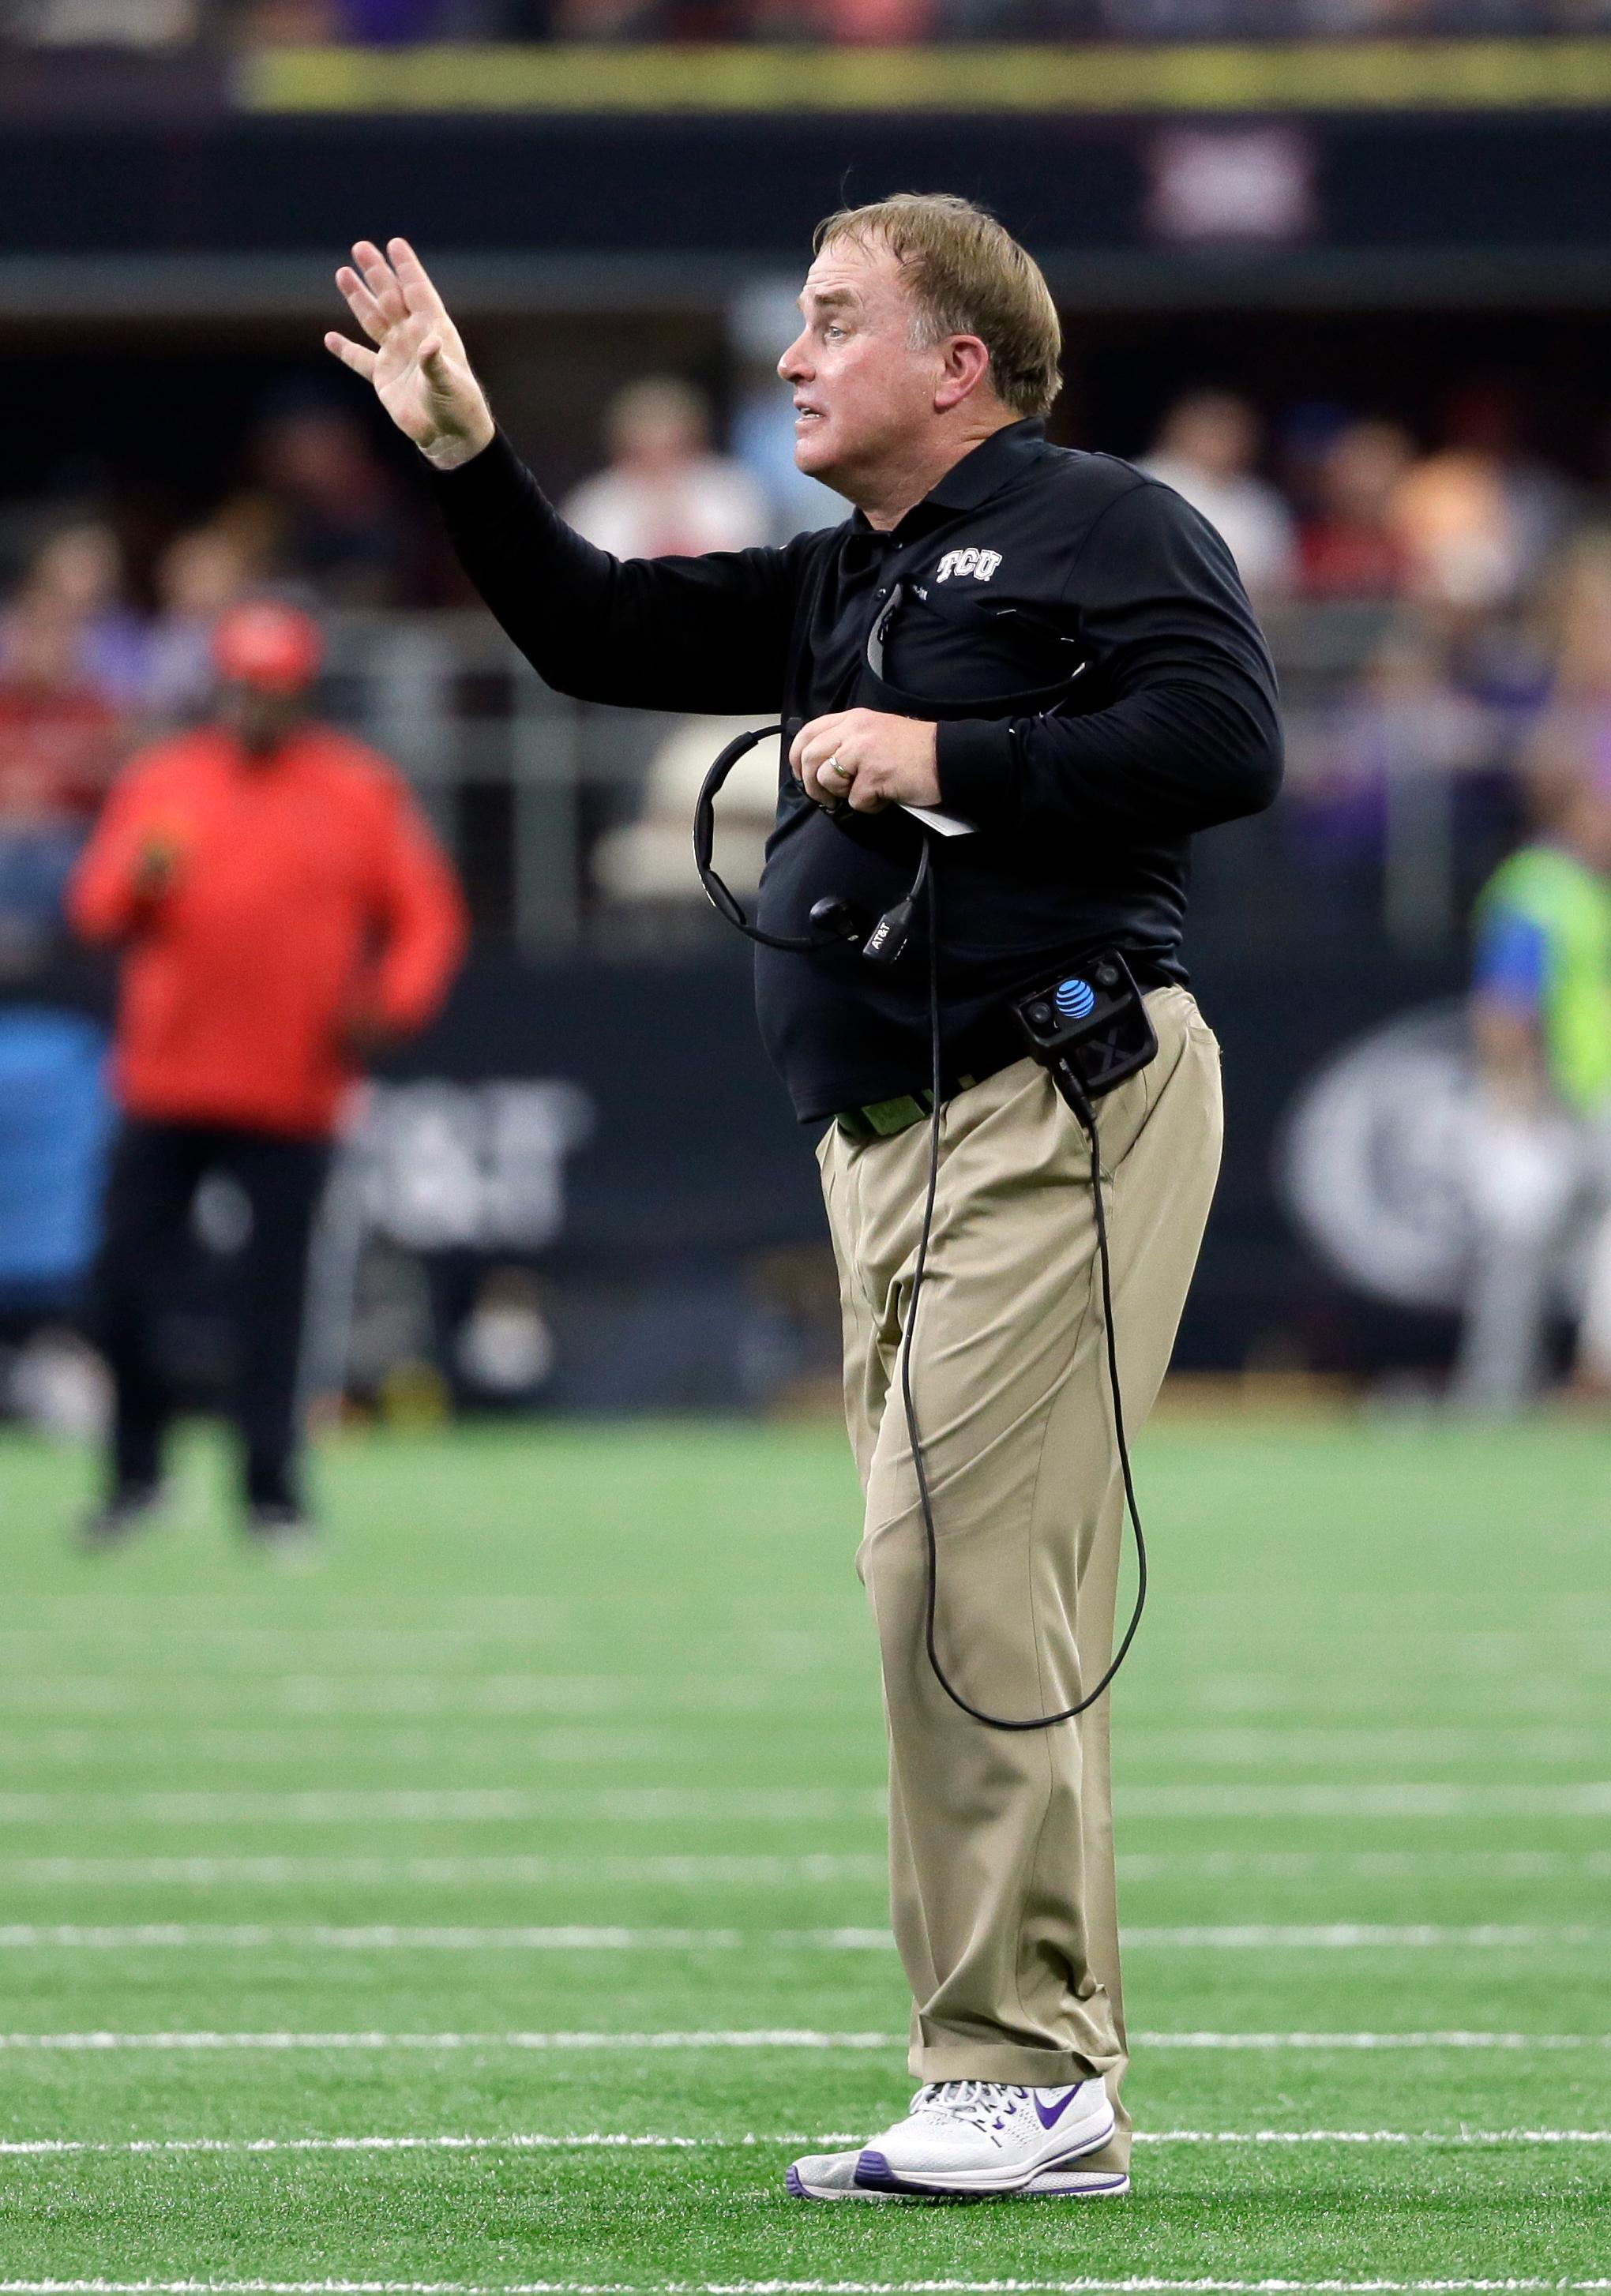 TCU head coach Gary Patterson signals to his defense in the first half of the Big 12 Conference championship NCAA college football game against Oklahoma on Saturday, Dec. 2, 2017, in Arlington, Texas. (AP Photo/Tony Gutierrez)